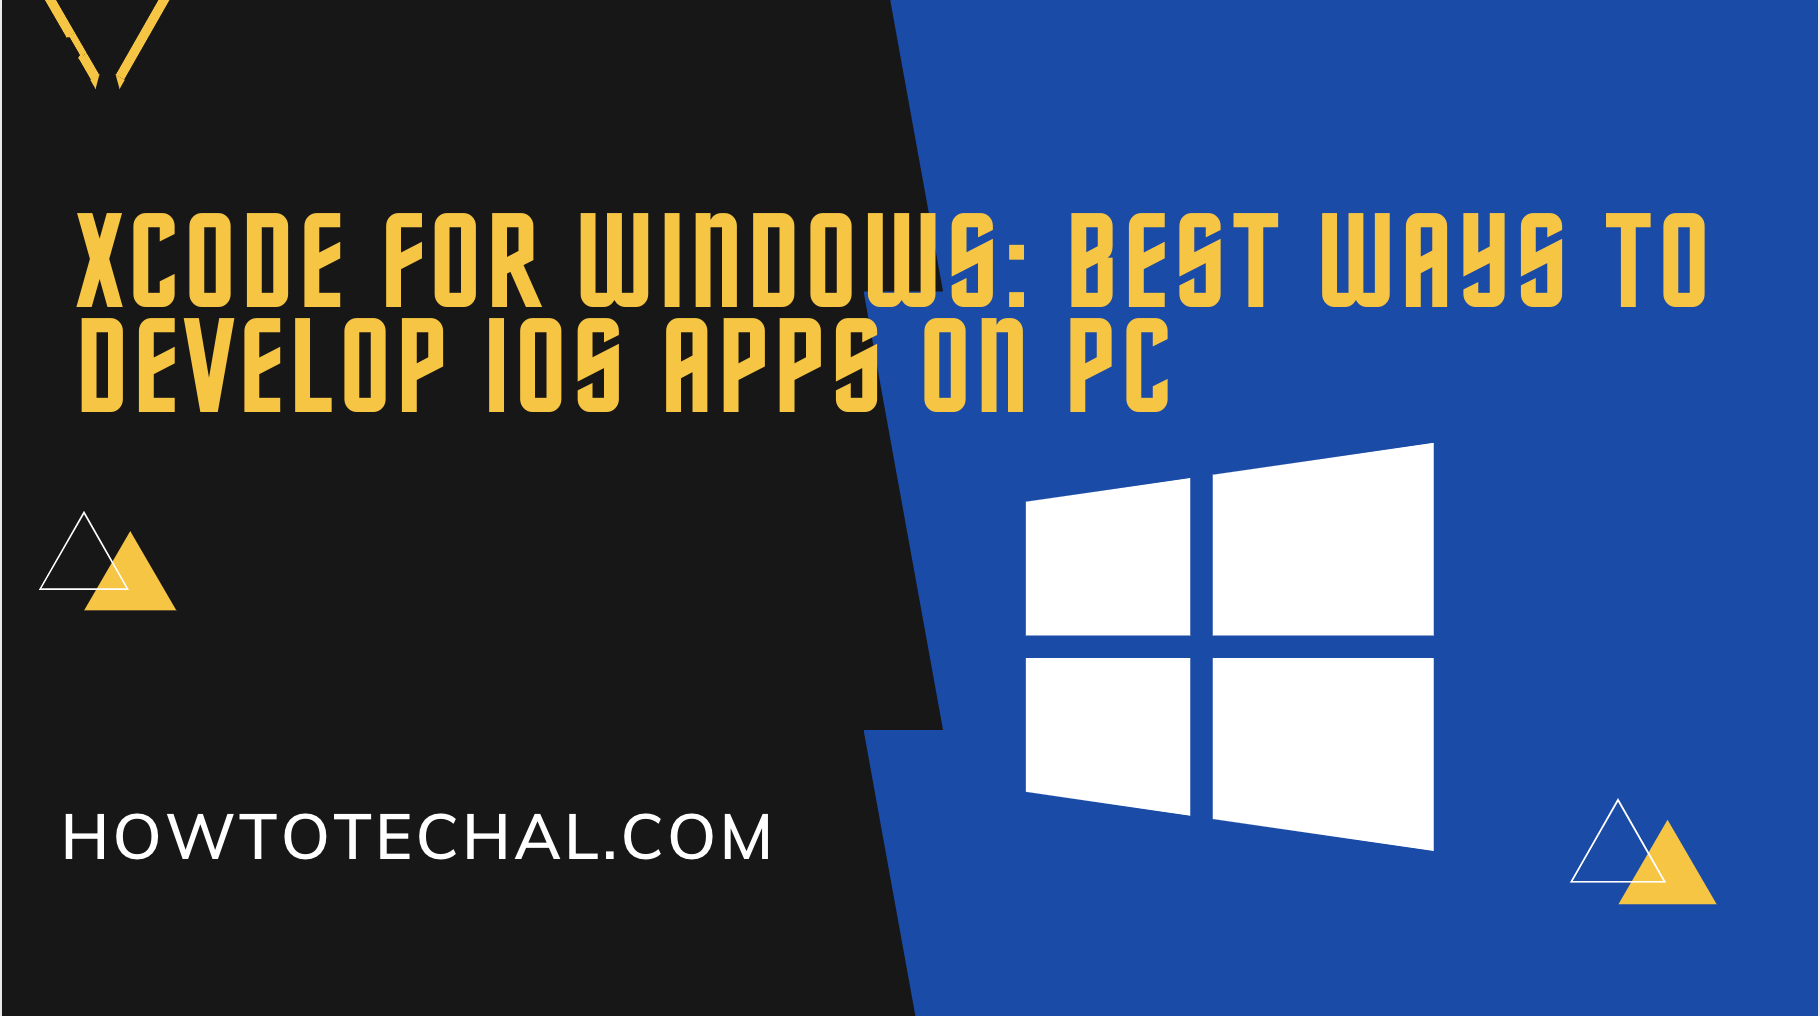 Xcode for Windows: Best Ways to Develop iOS Apps on PC